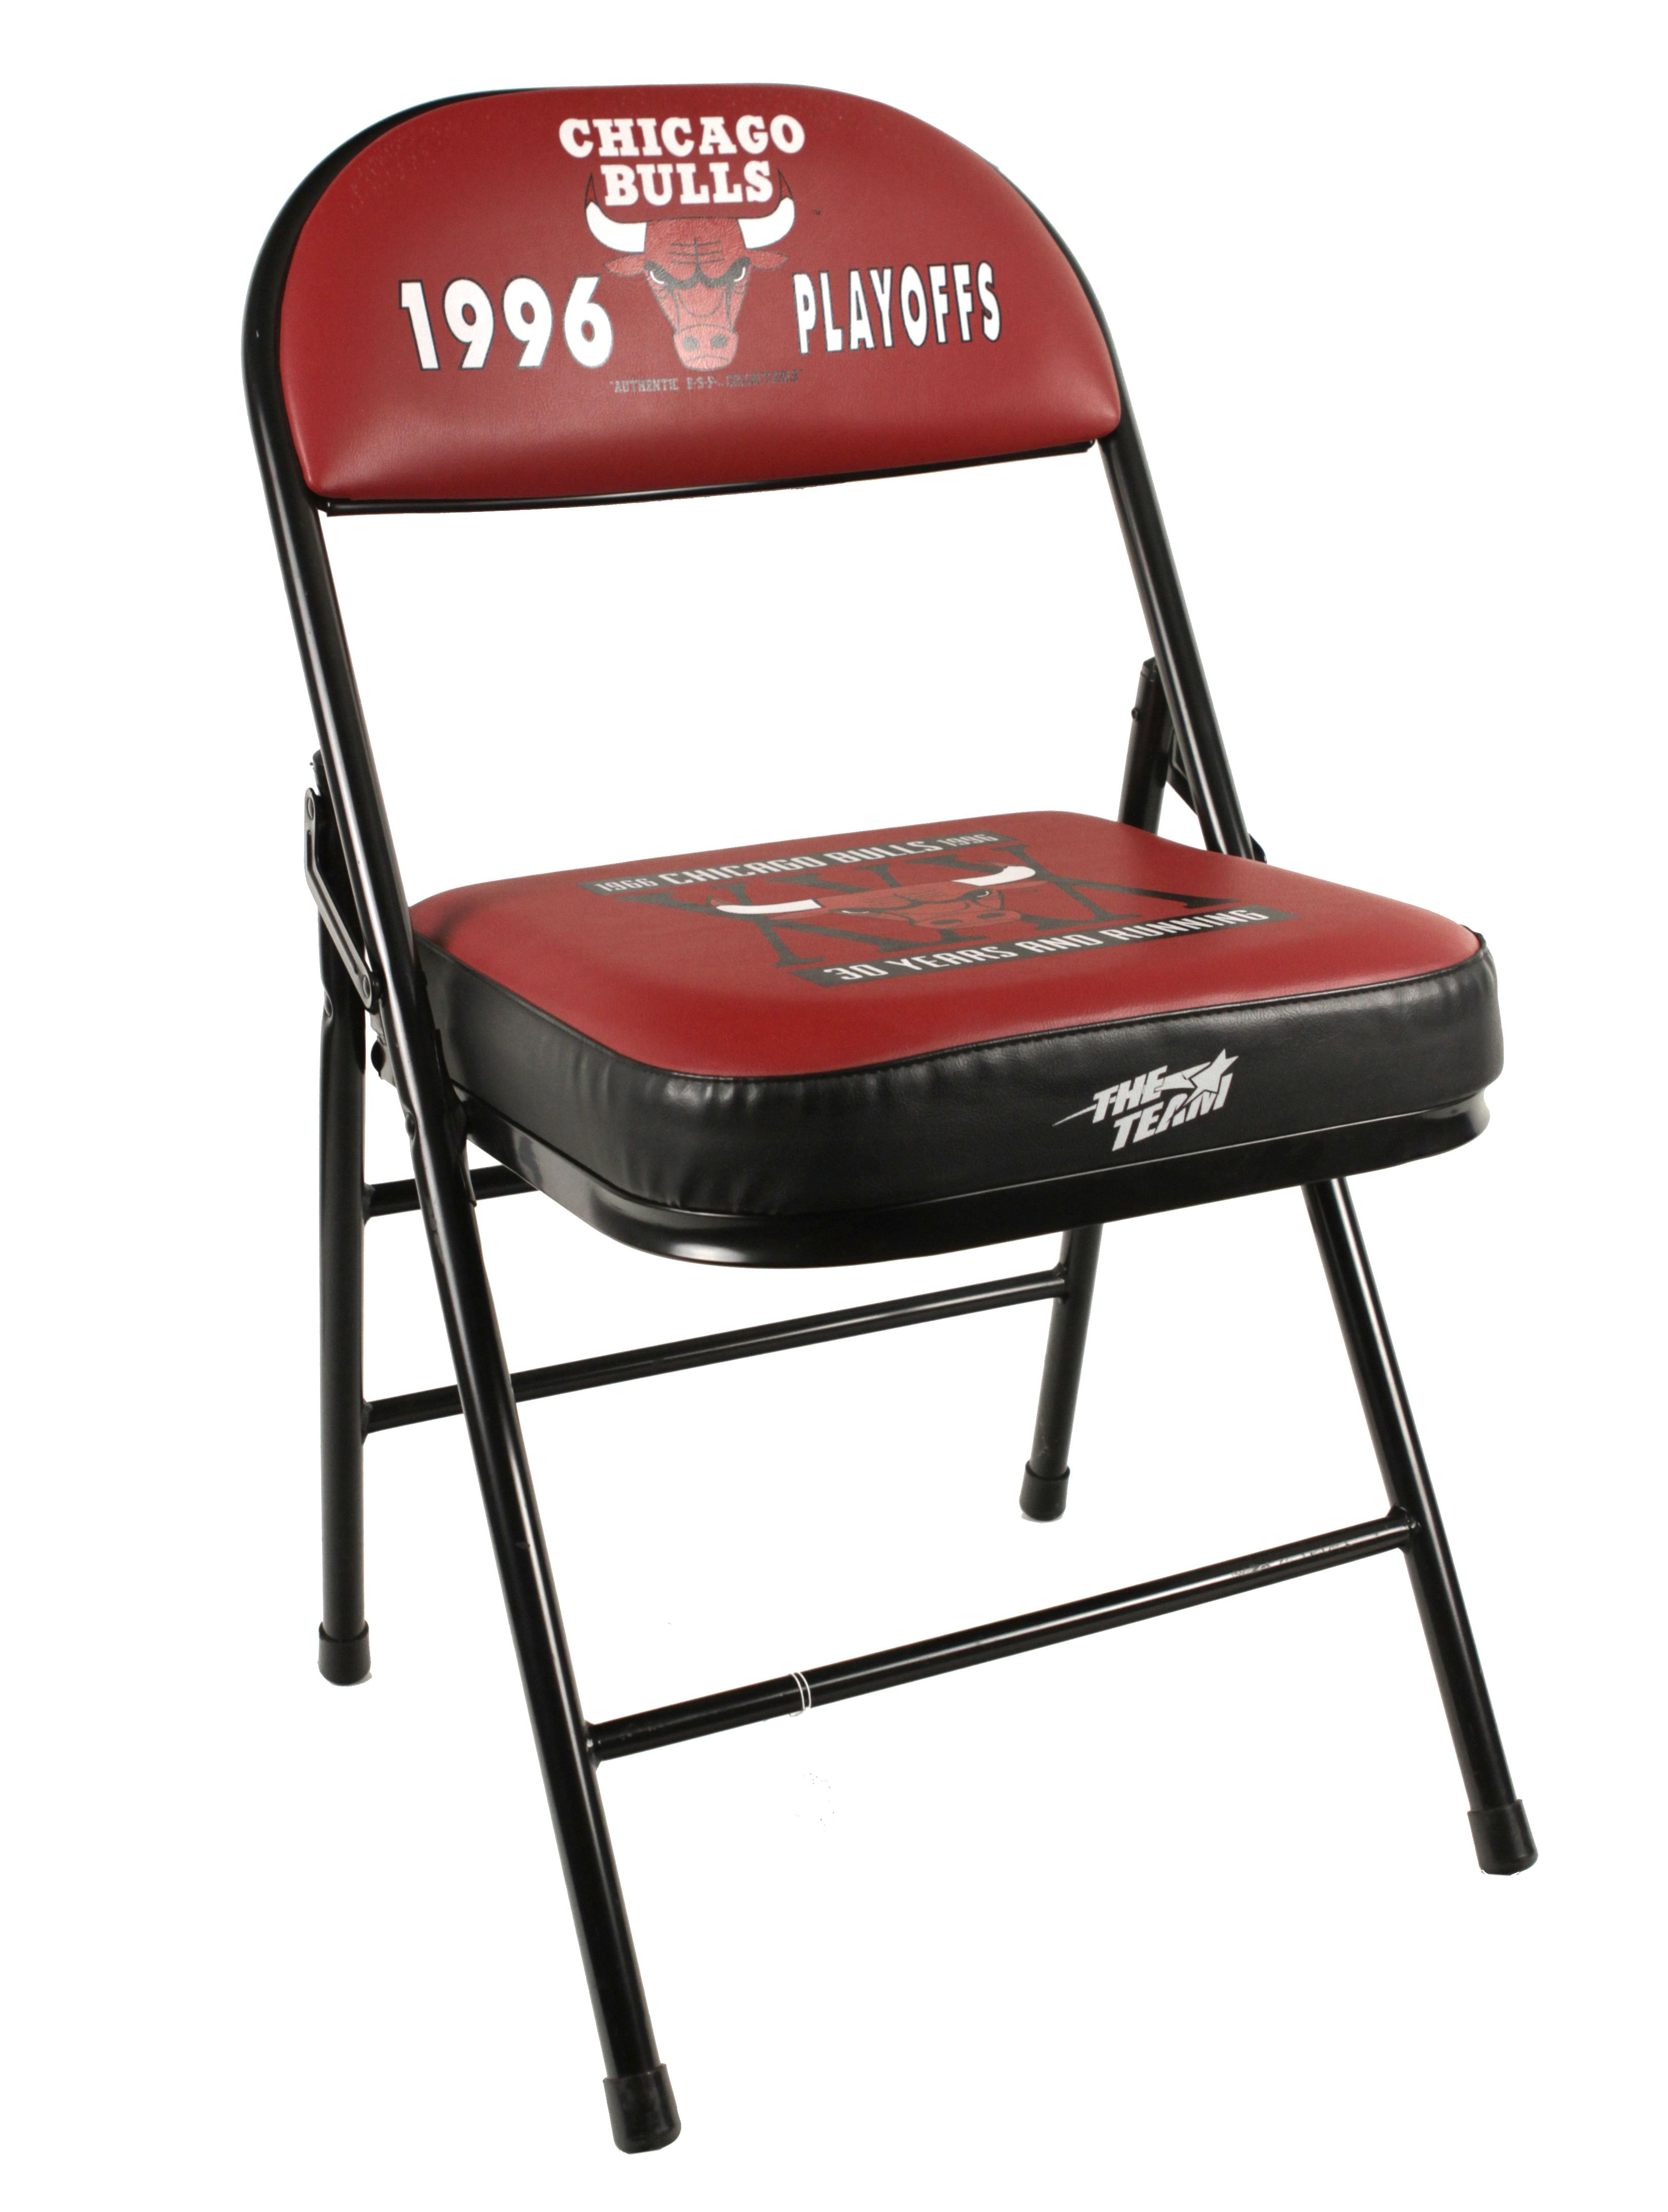 lot detail 1996 chicago bulls playoff seat used during record setting season in playoffs w loa. Black Bedroom Furniture Sets. Home Design Ideas